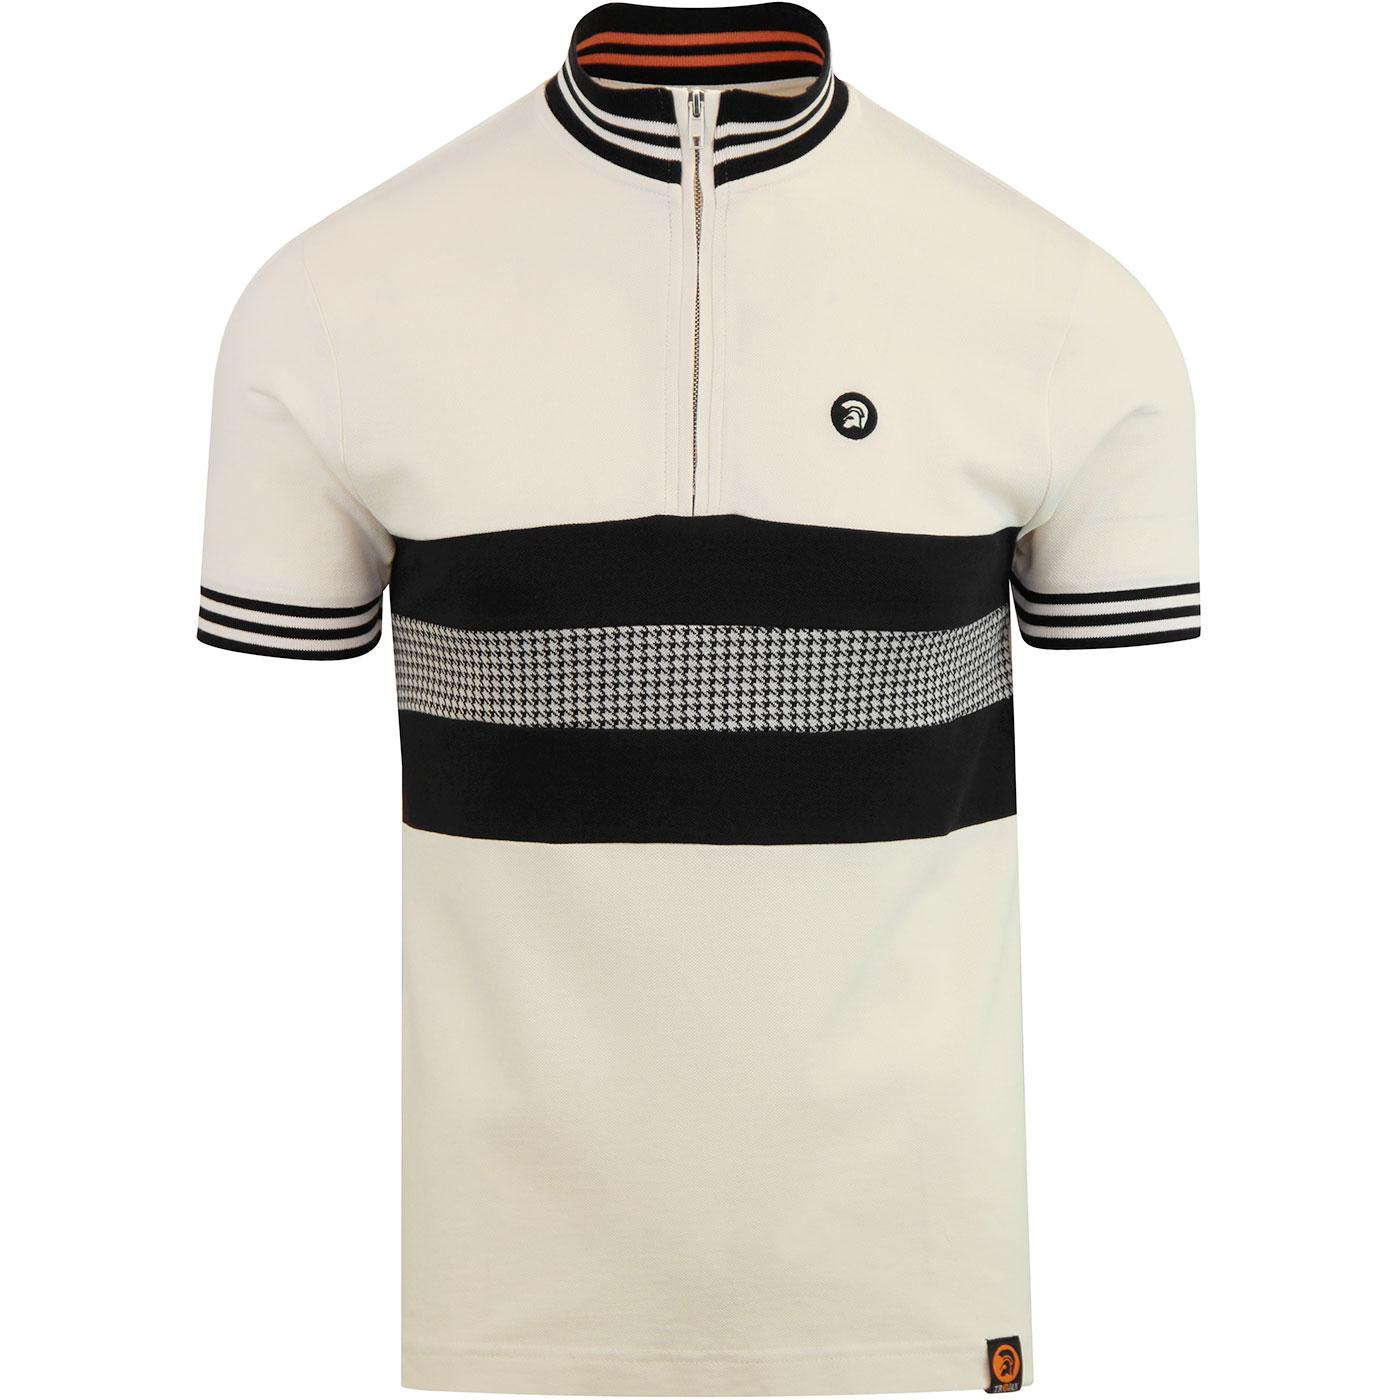 TROJAN RECORDS 2-Tone Dogtooth Panel Cycling Top